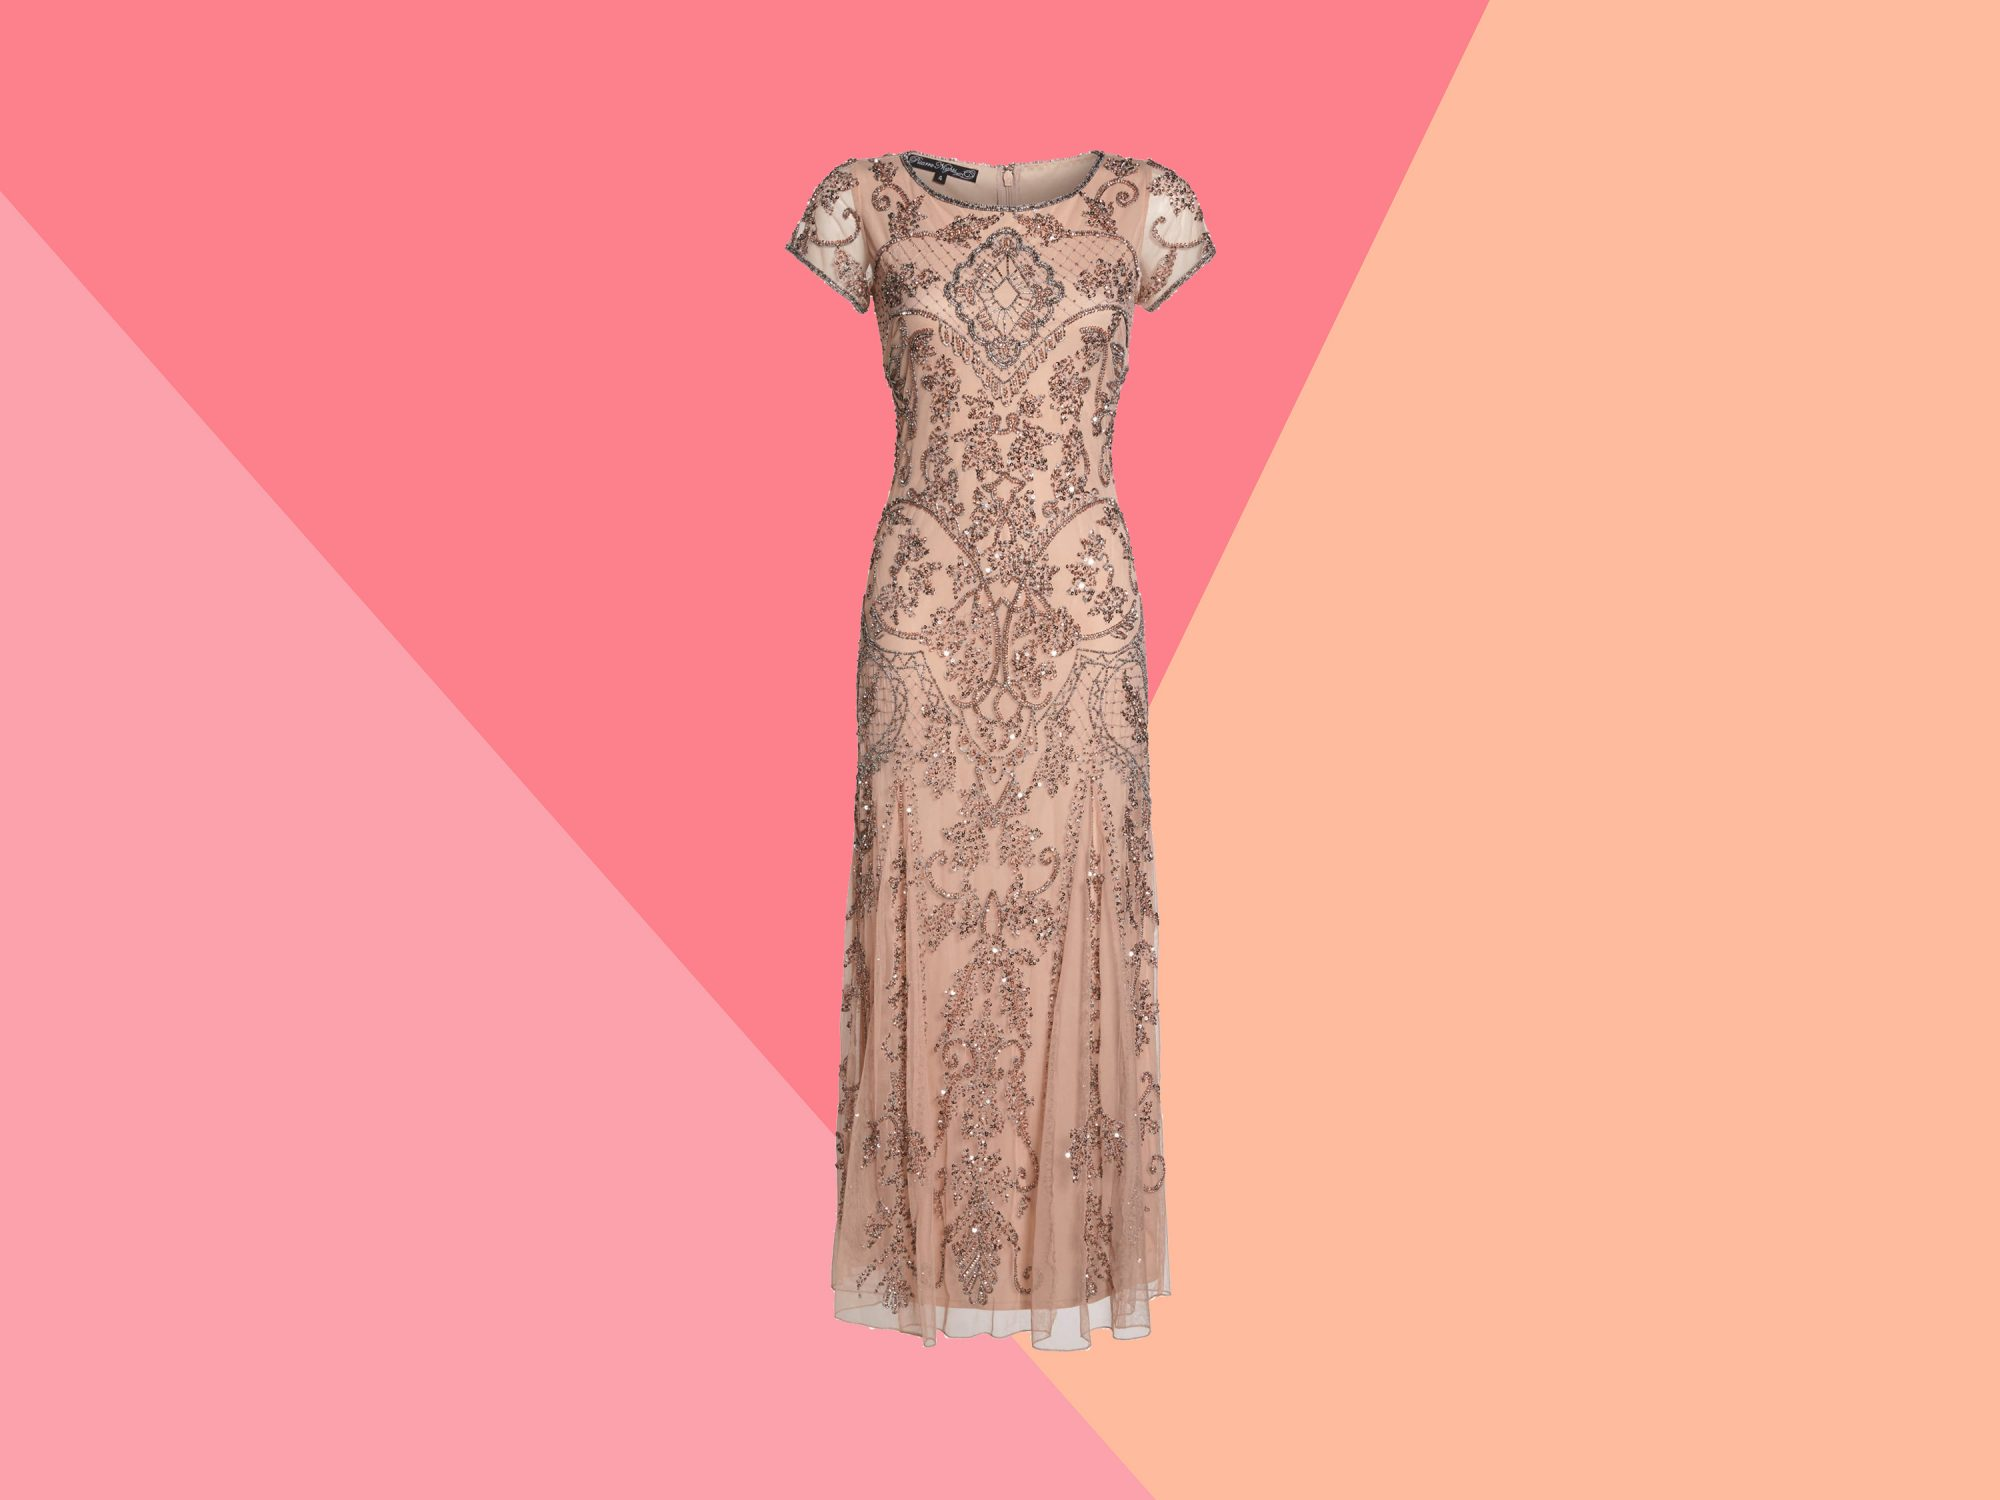 13 Mother Of The Bride Dresses For Every Type Of Wedding Real Simple,Sample Sale Wedding Dresses Online